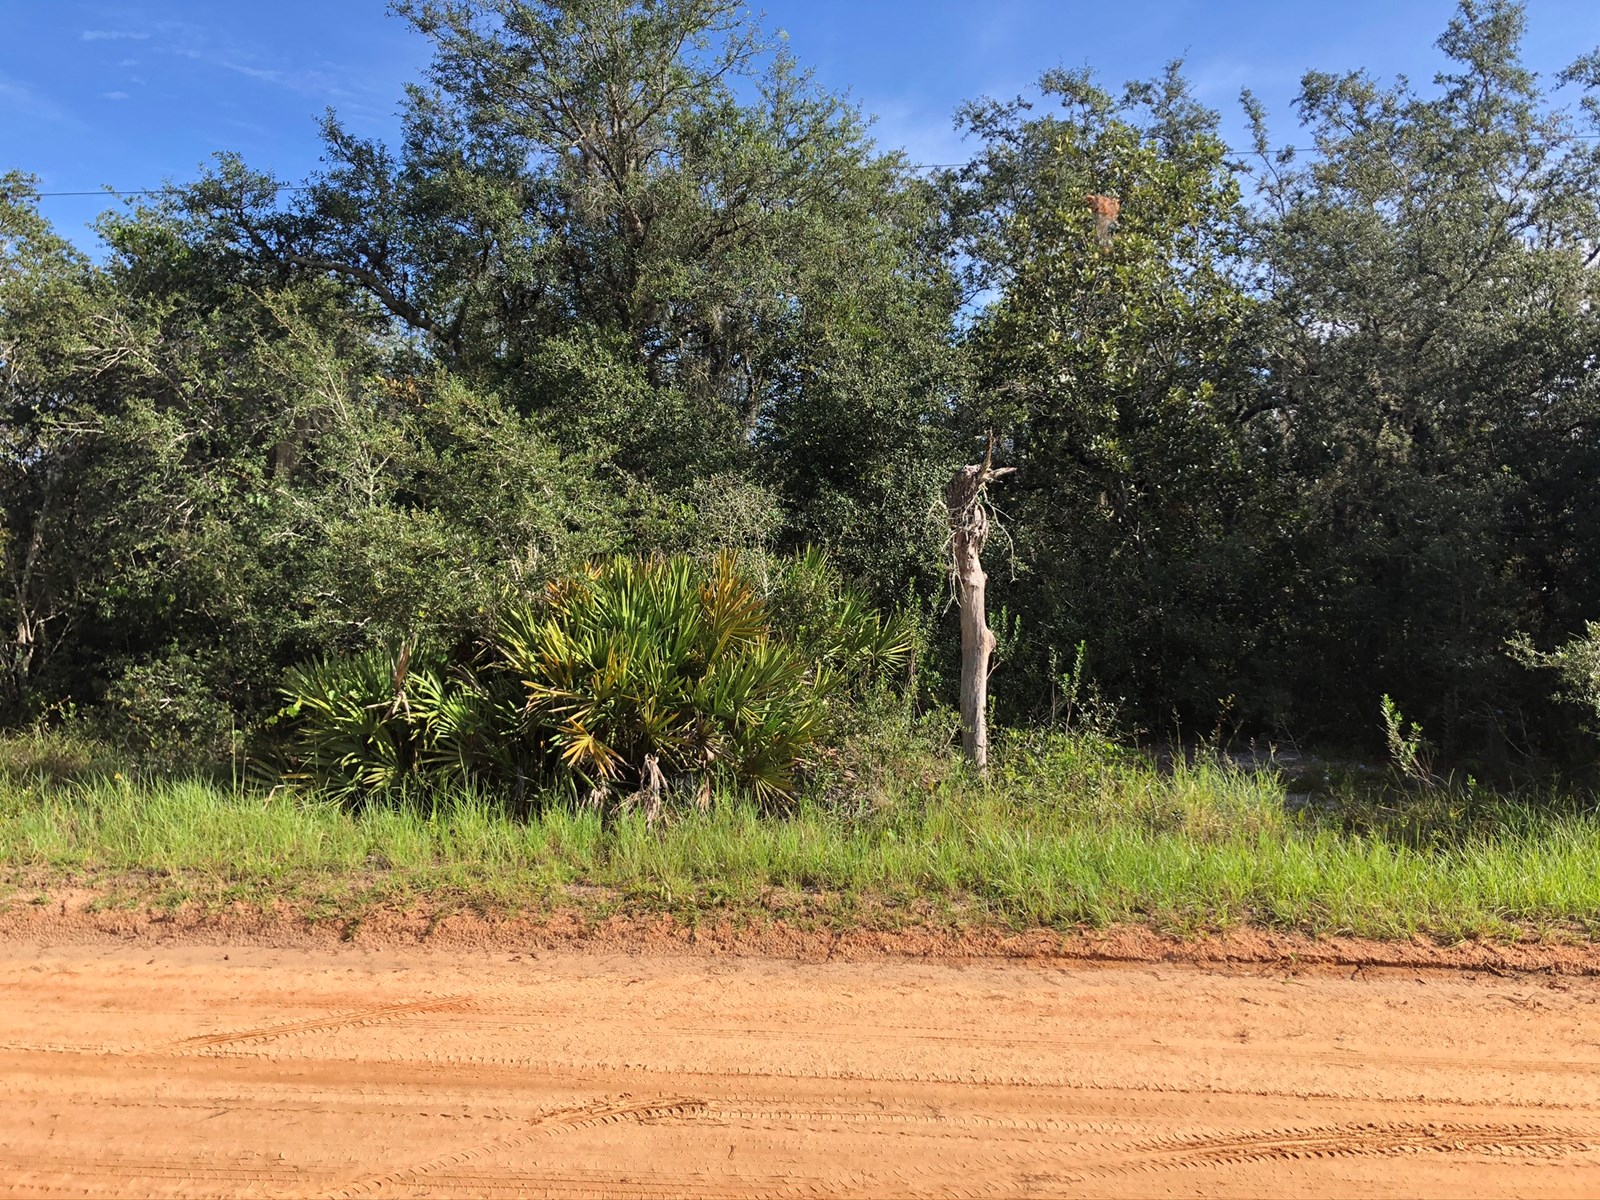 BUILD YOUR DREAM HOME, 1 ACRE LOT, 3 LOTS AVAILABLE, POLK CO